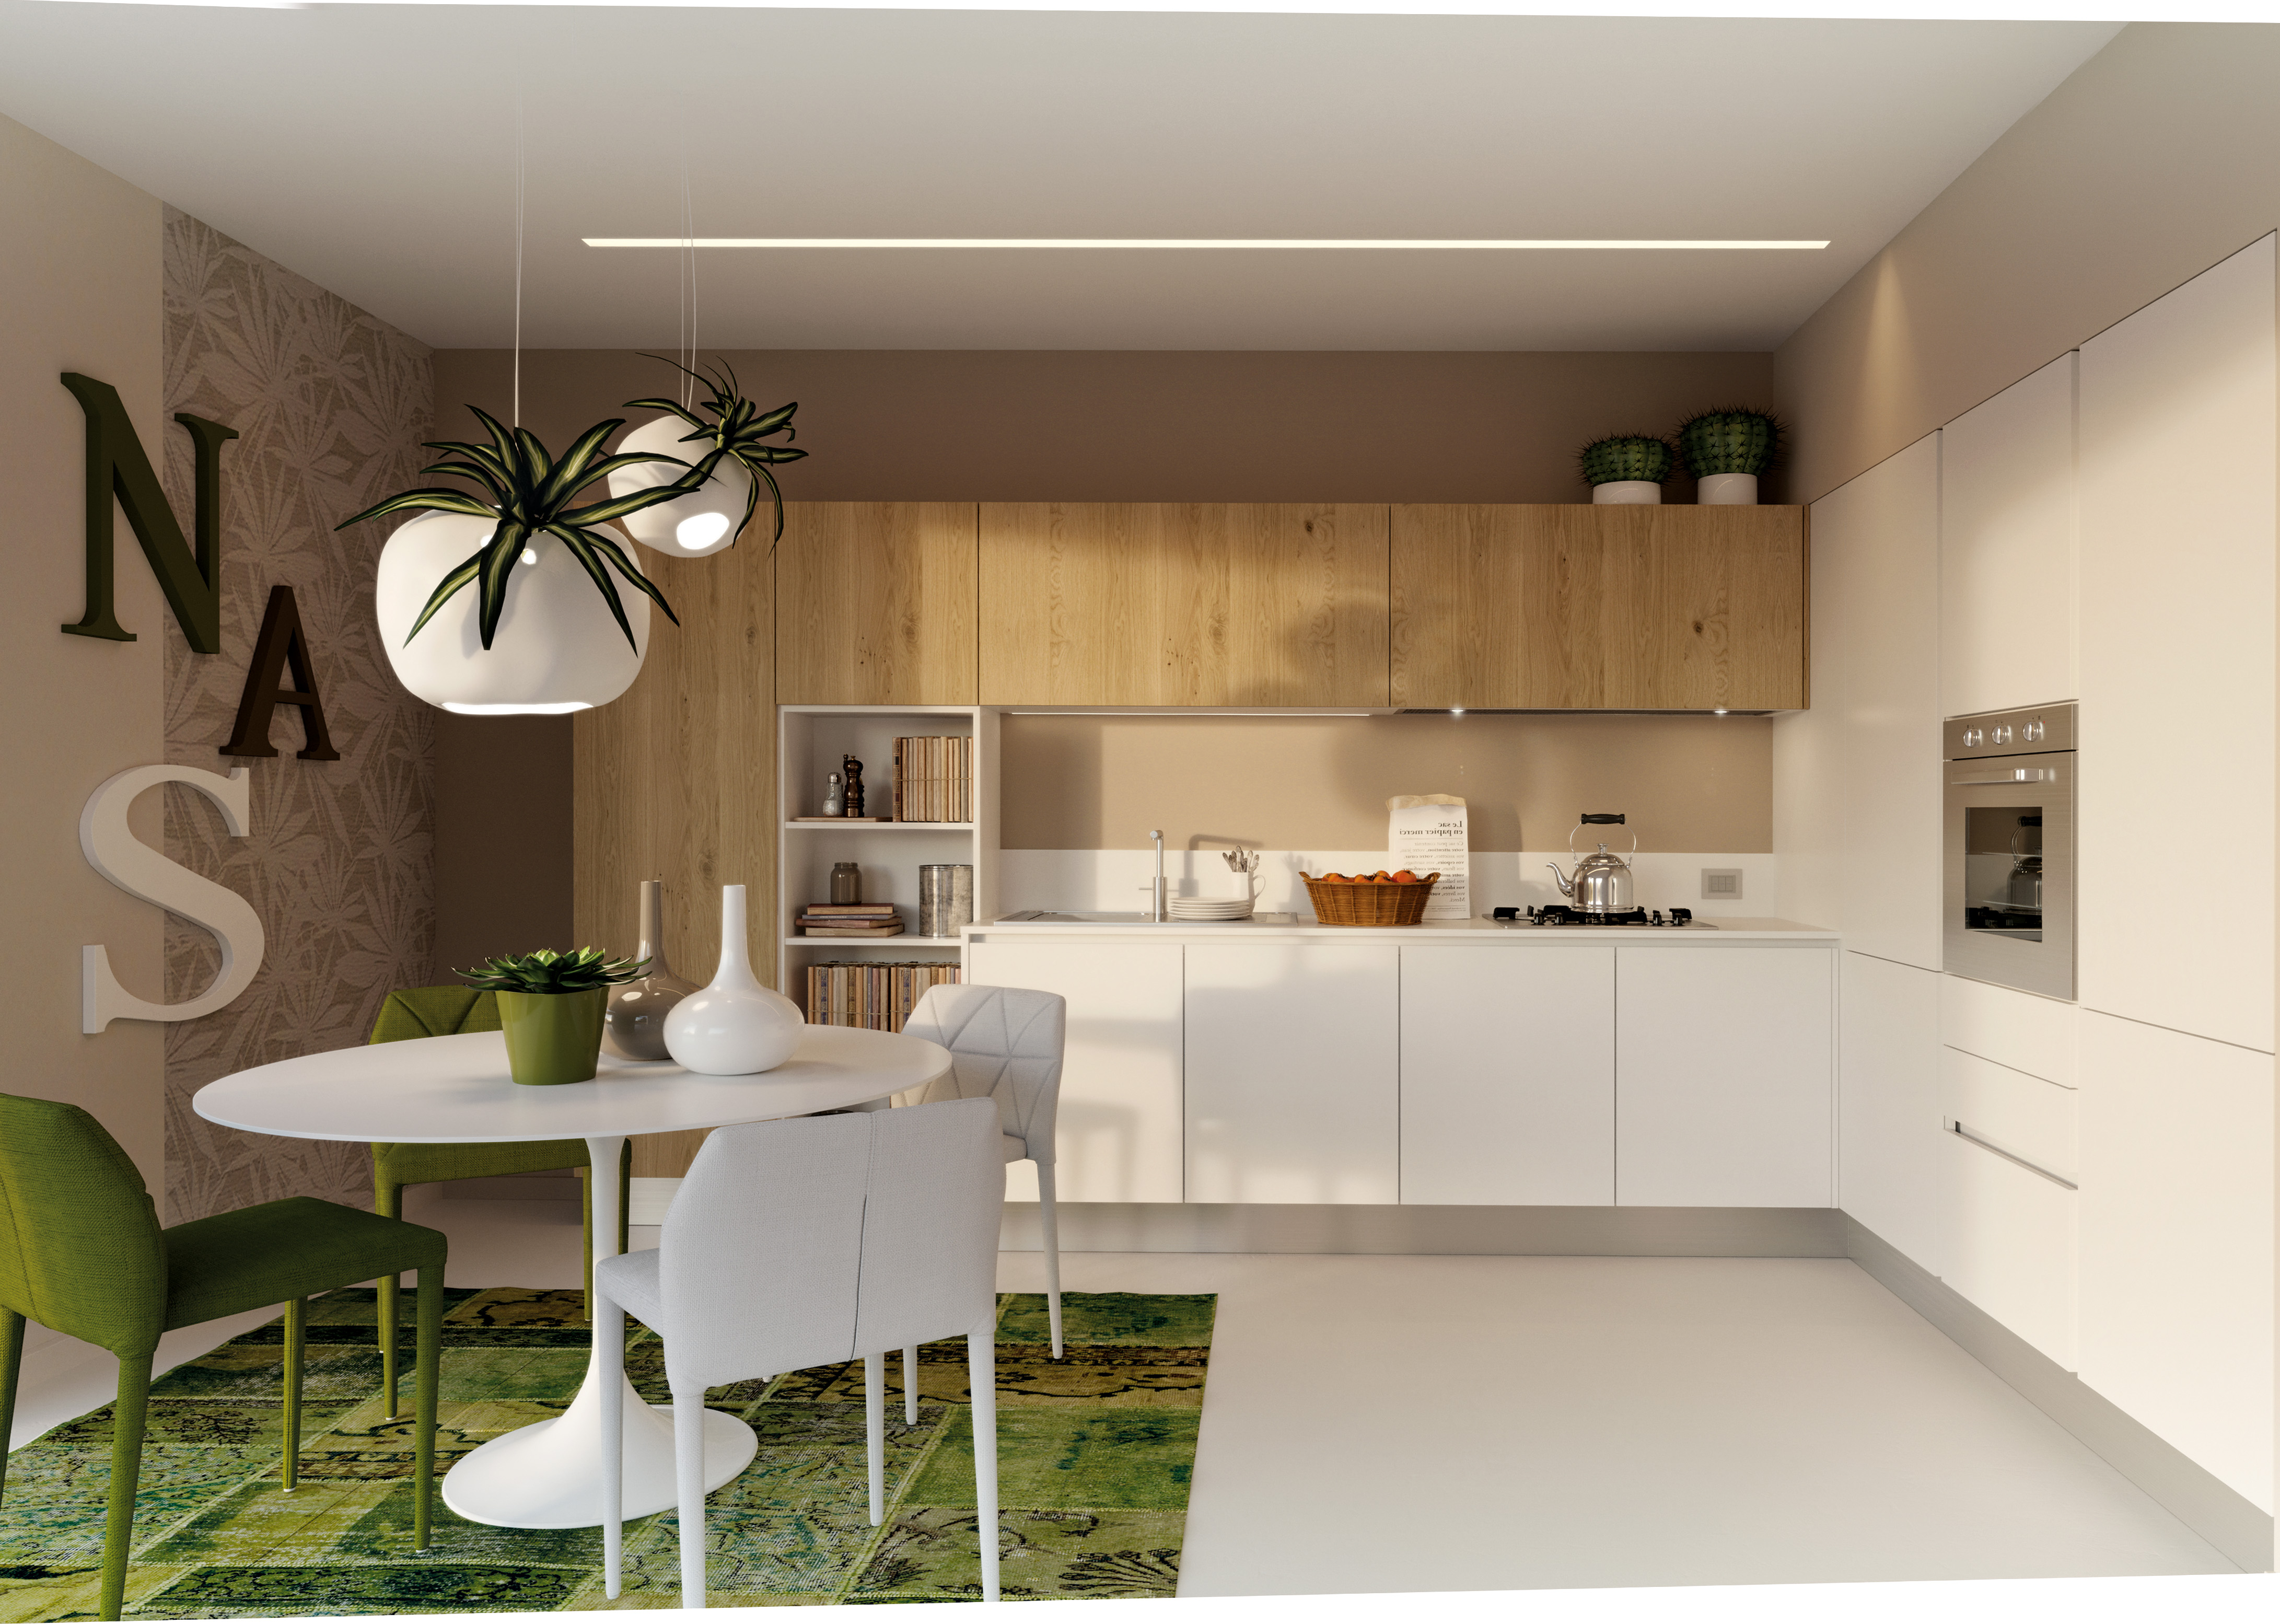 Cucine outlet lombardia beautiful amazing cucina outlet creo kyra